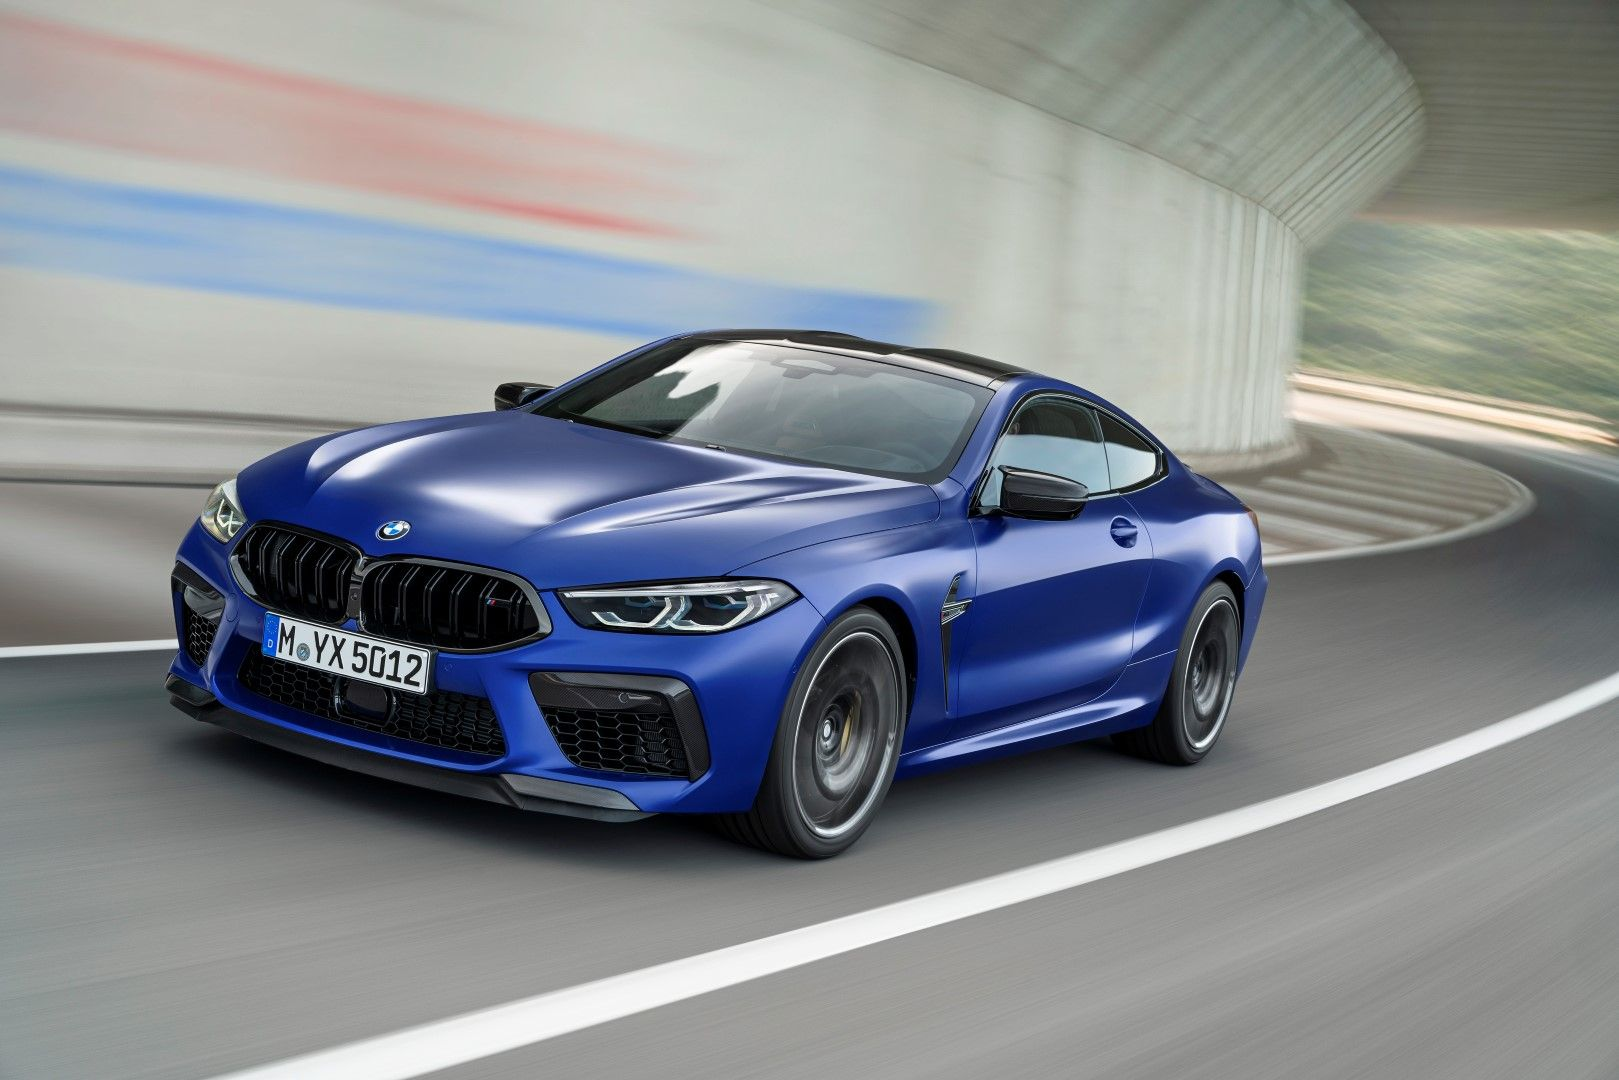 Bmw M8 Set To Be The Fastest Production Bmw Ever Around The Nurburgring Bmw Bmw Suv Bmw S